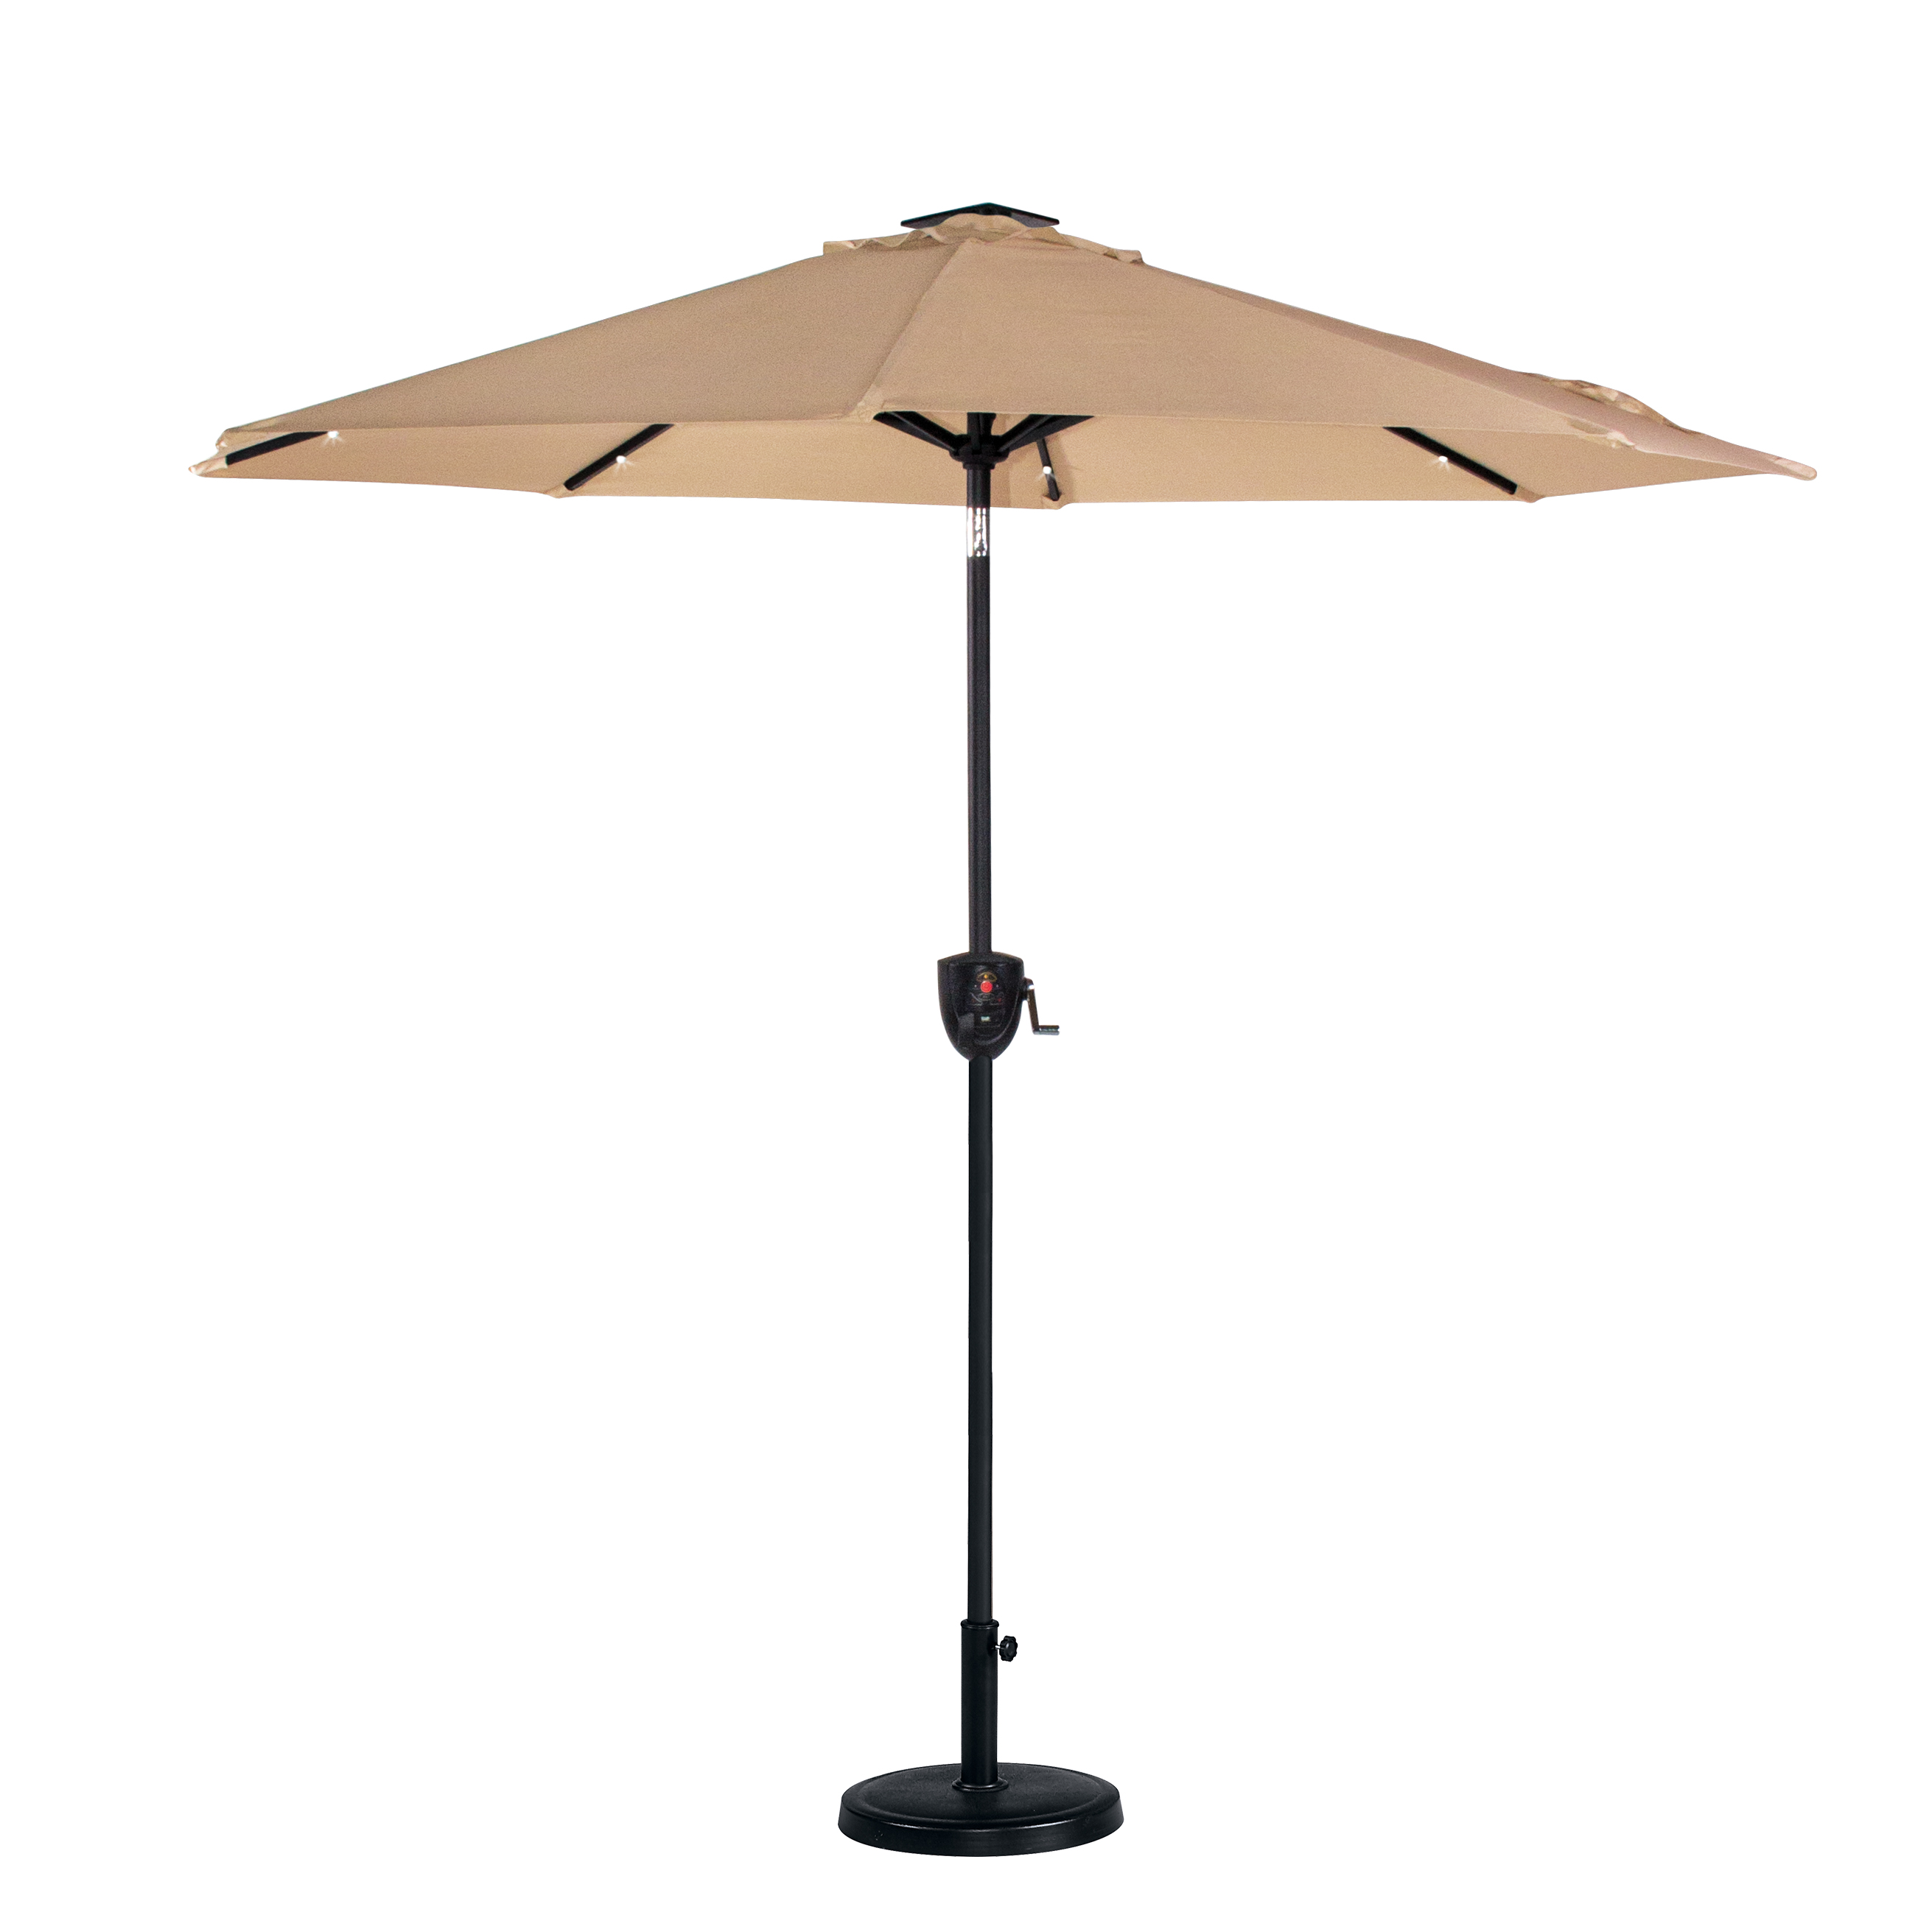 Garden Oasis 7' Music Umbrella With Bluetooth And Lights